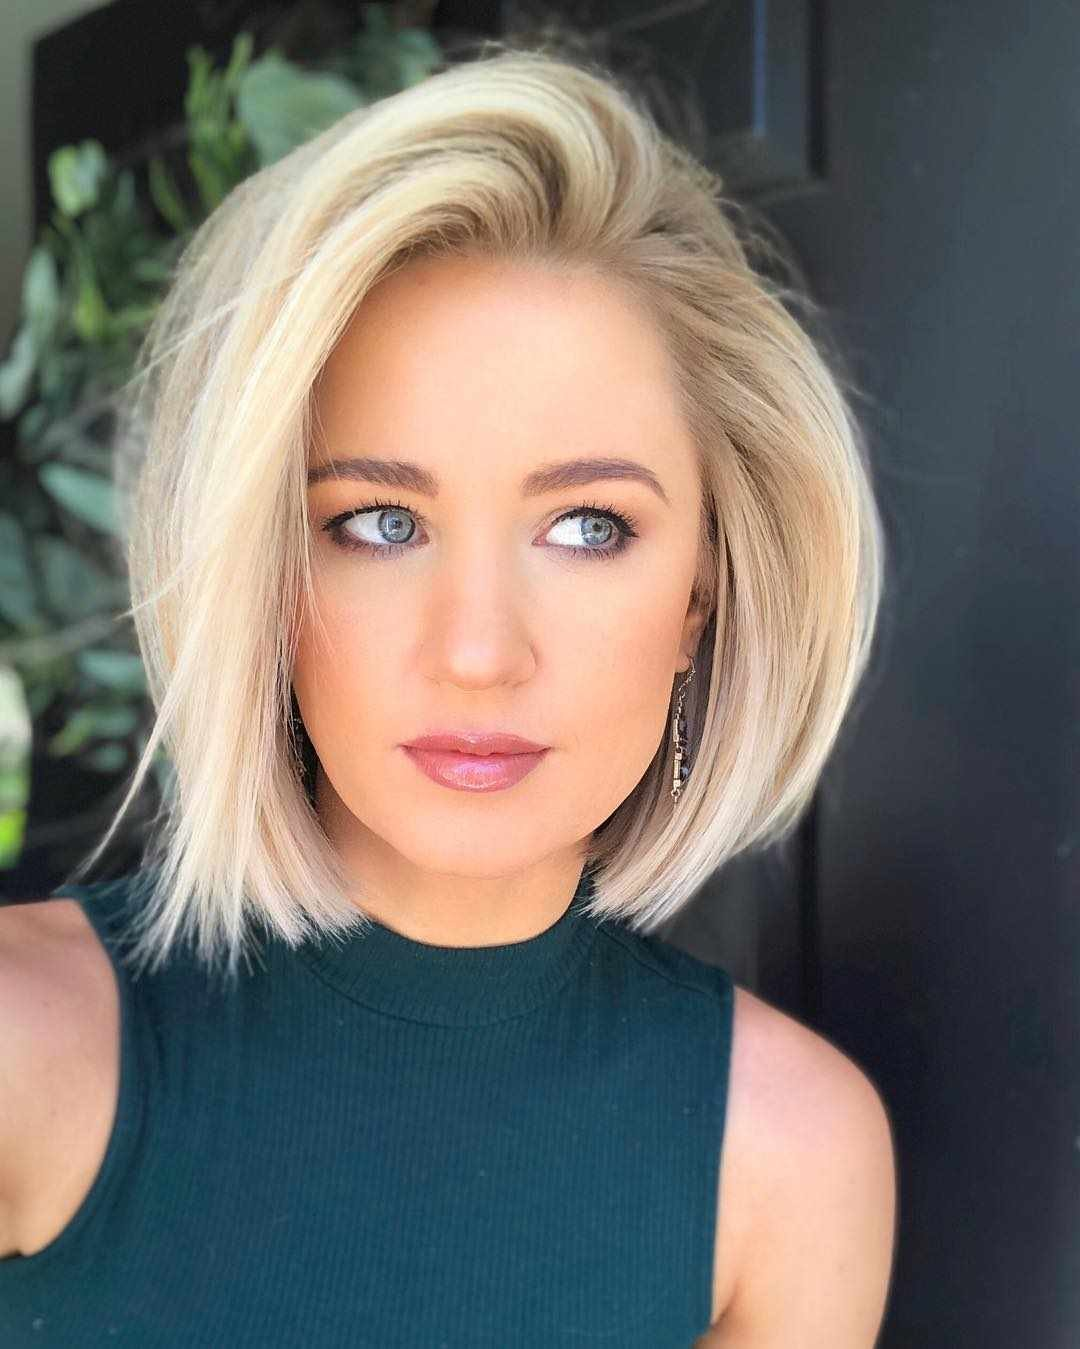 The Best 50 Hottest Pixie And Bob Hairstyles For 2019 » Short Pictures